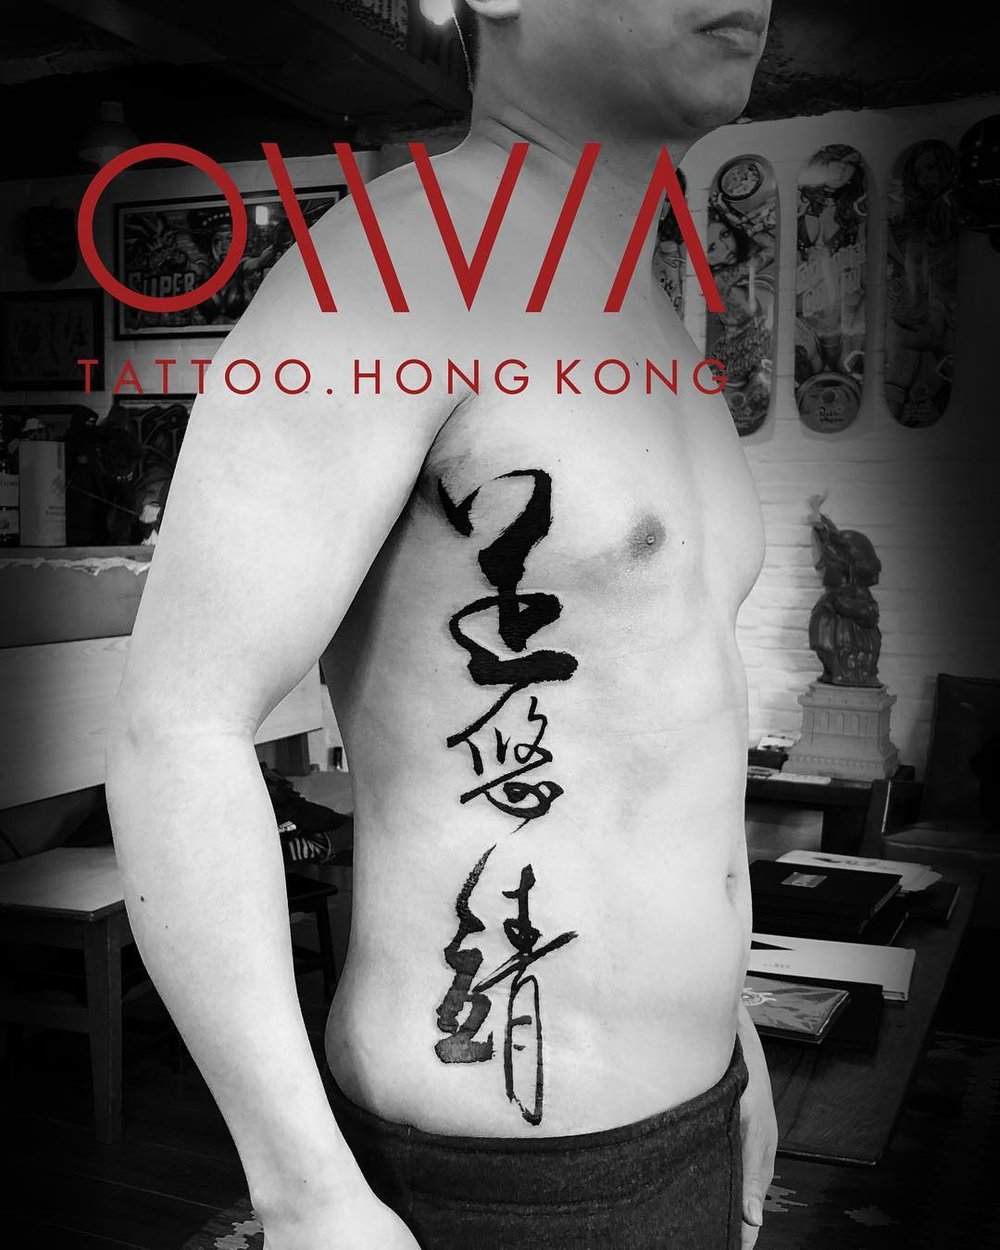 2018-fridays-tattoo-hong-kong-olivia-chinese-calligraphy-2.jpg